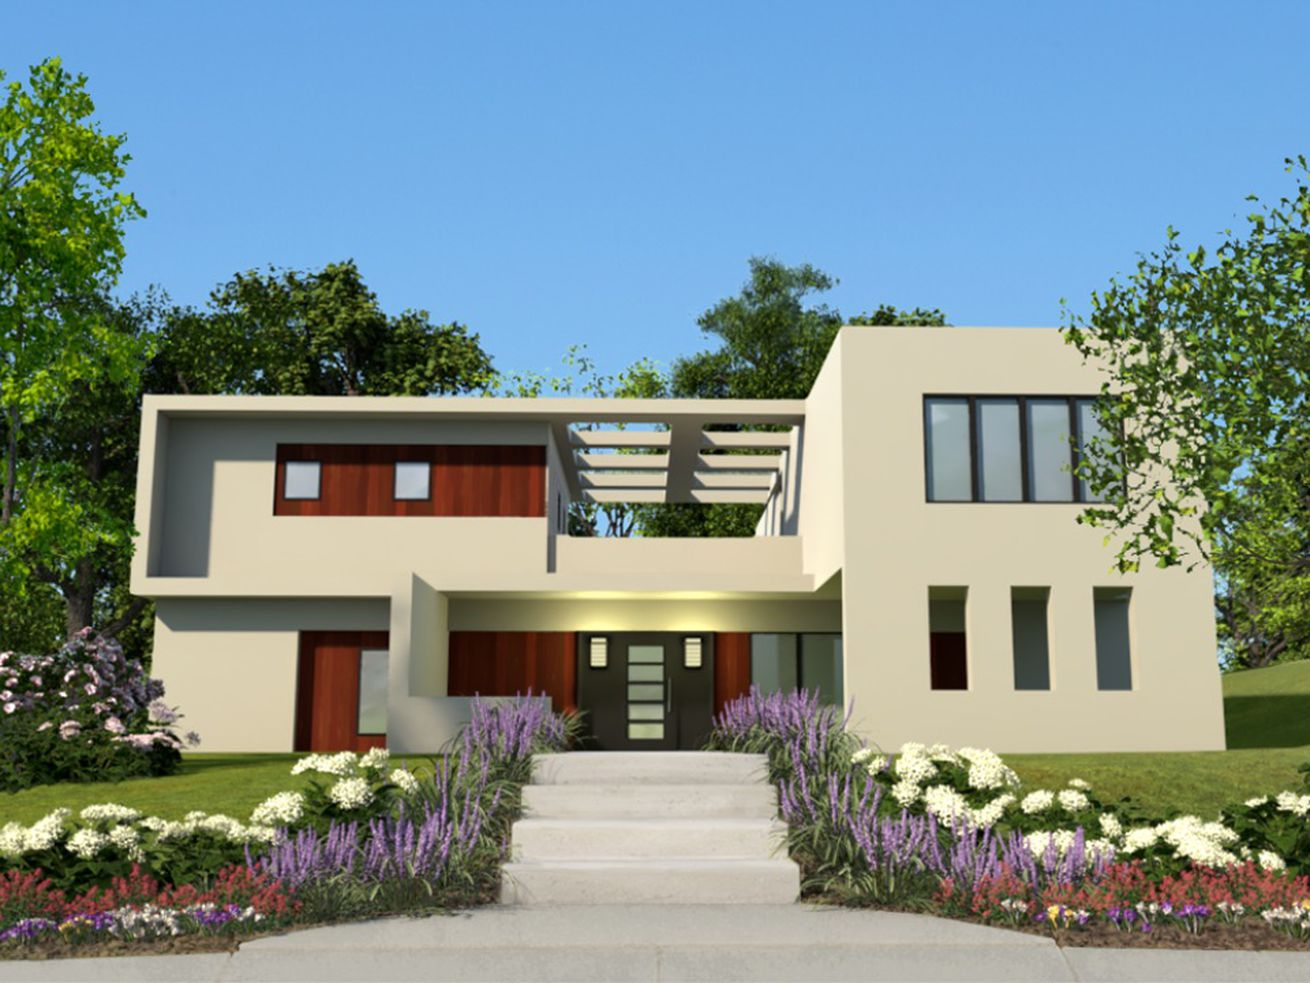 A modern home design on Higharc, a new program being developed that allows homebuilders to customize their home designs.